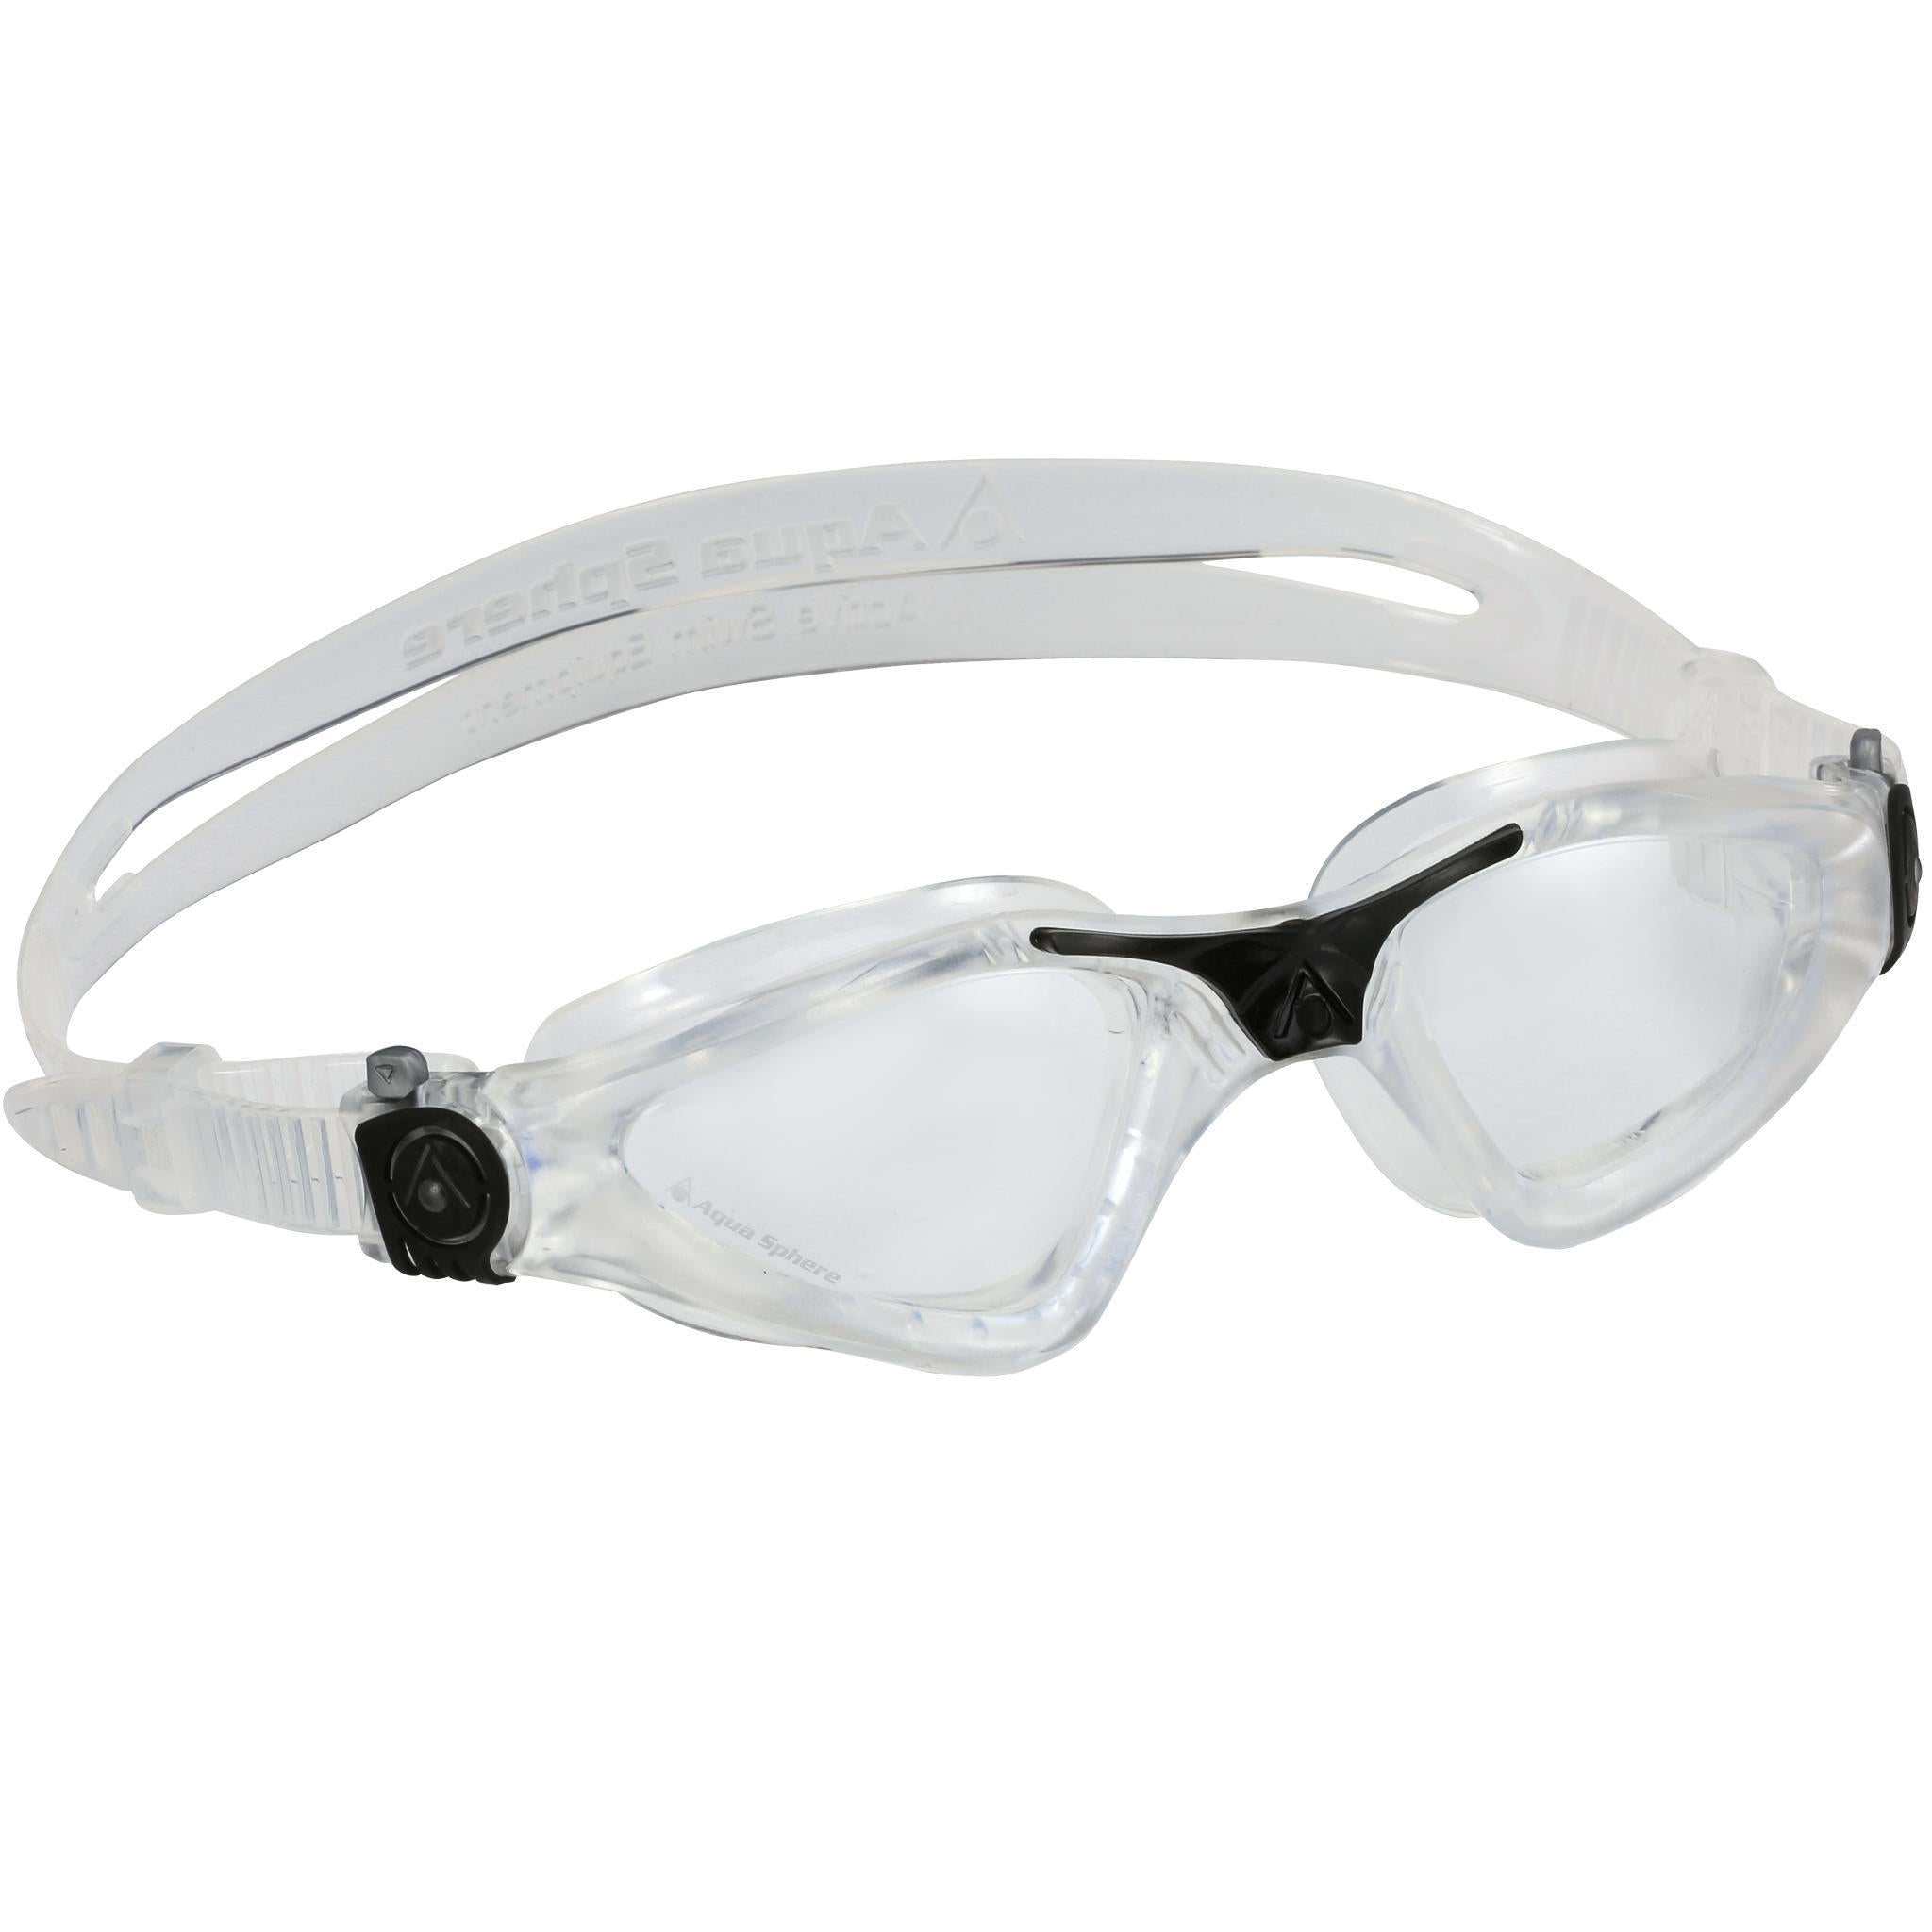 bf223083536 Aqua Sphere Kayenne Swimming Goggles Tinted   Clear Lens ...